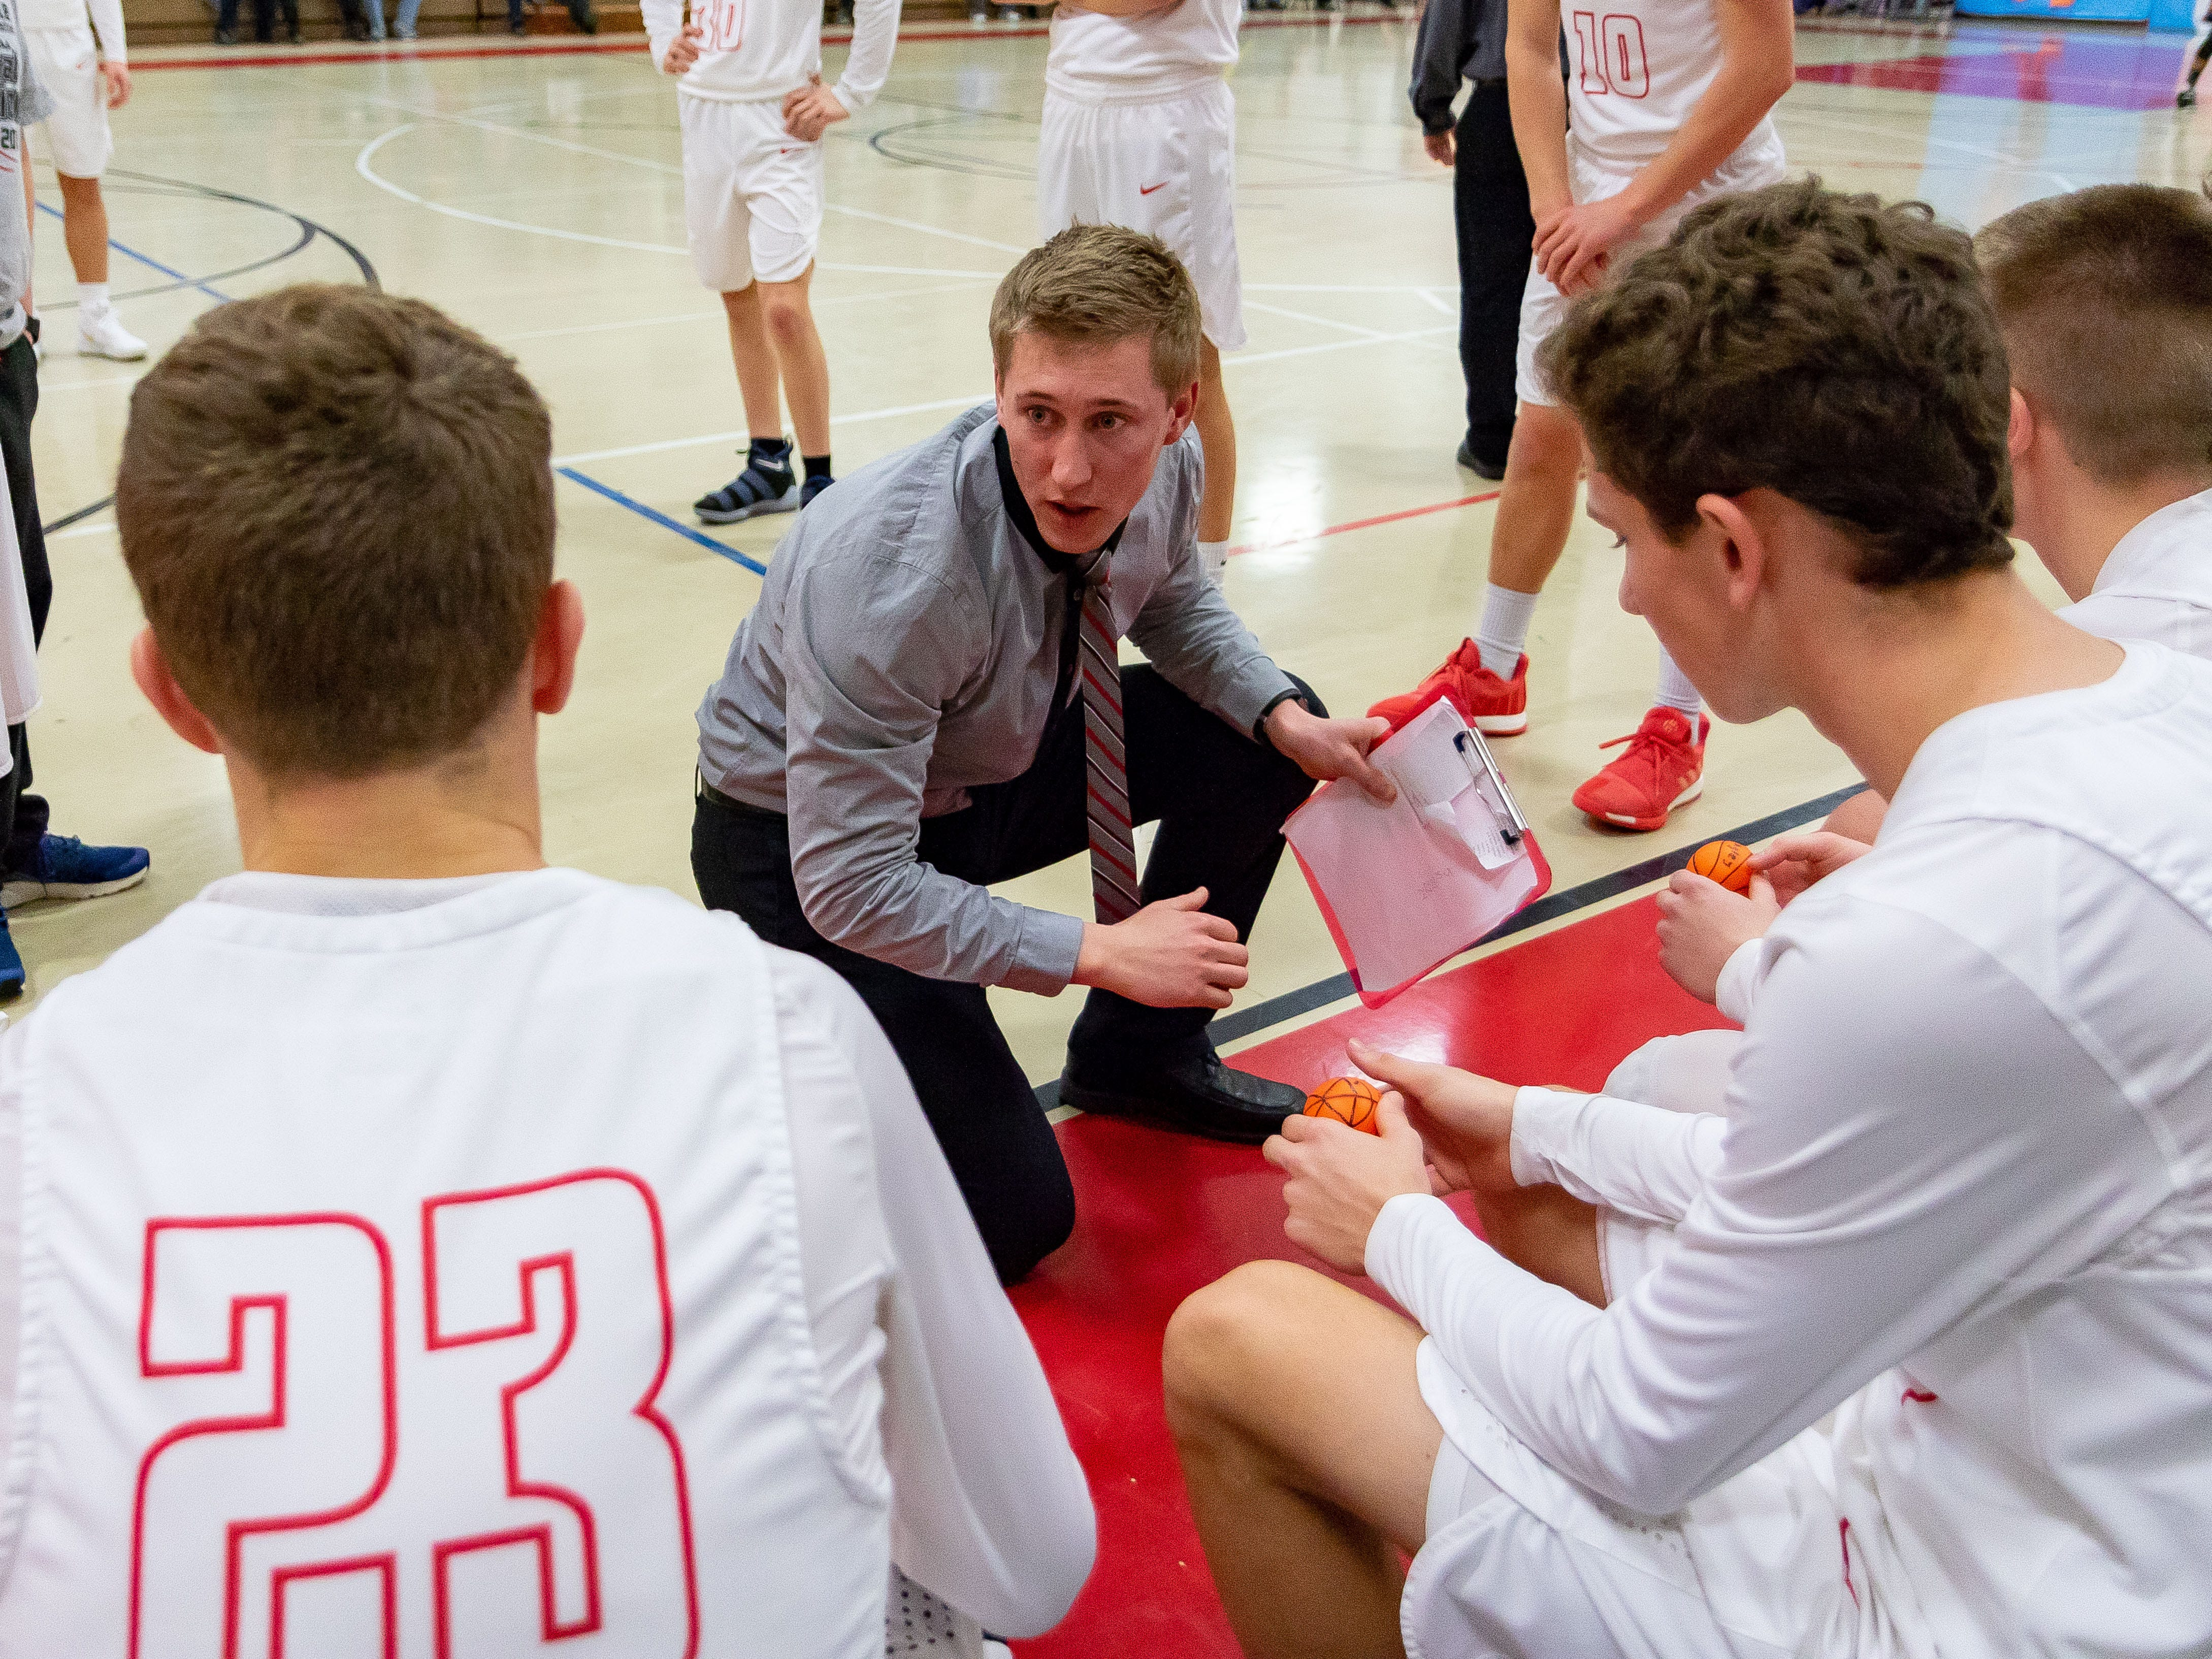 Justin Jergens, assistant varsity coach and brother of Dylan Jergens, provides some pregame instructions.